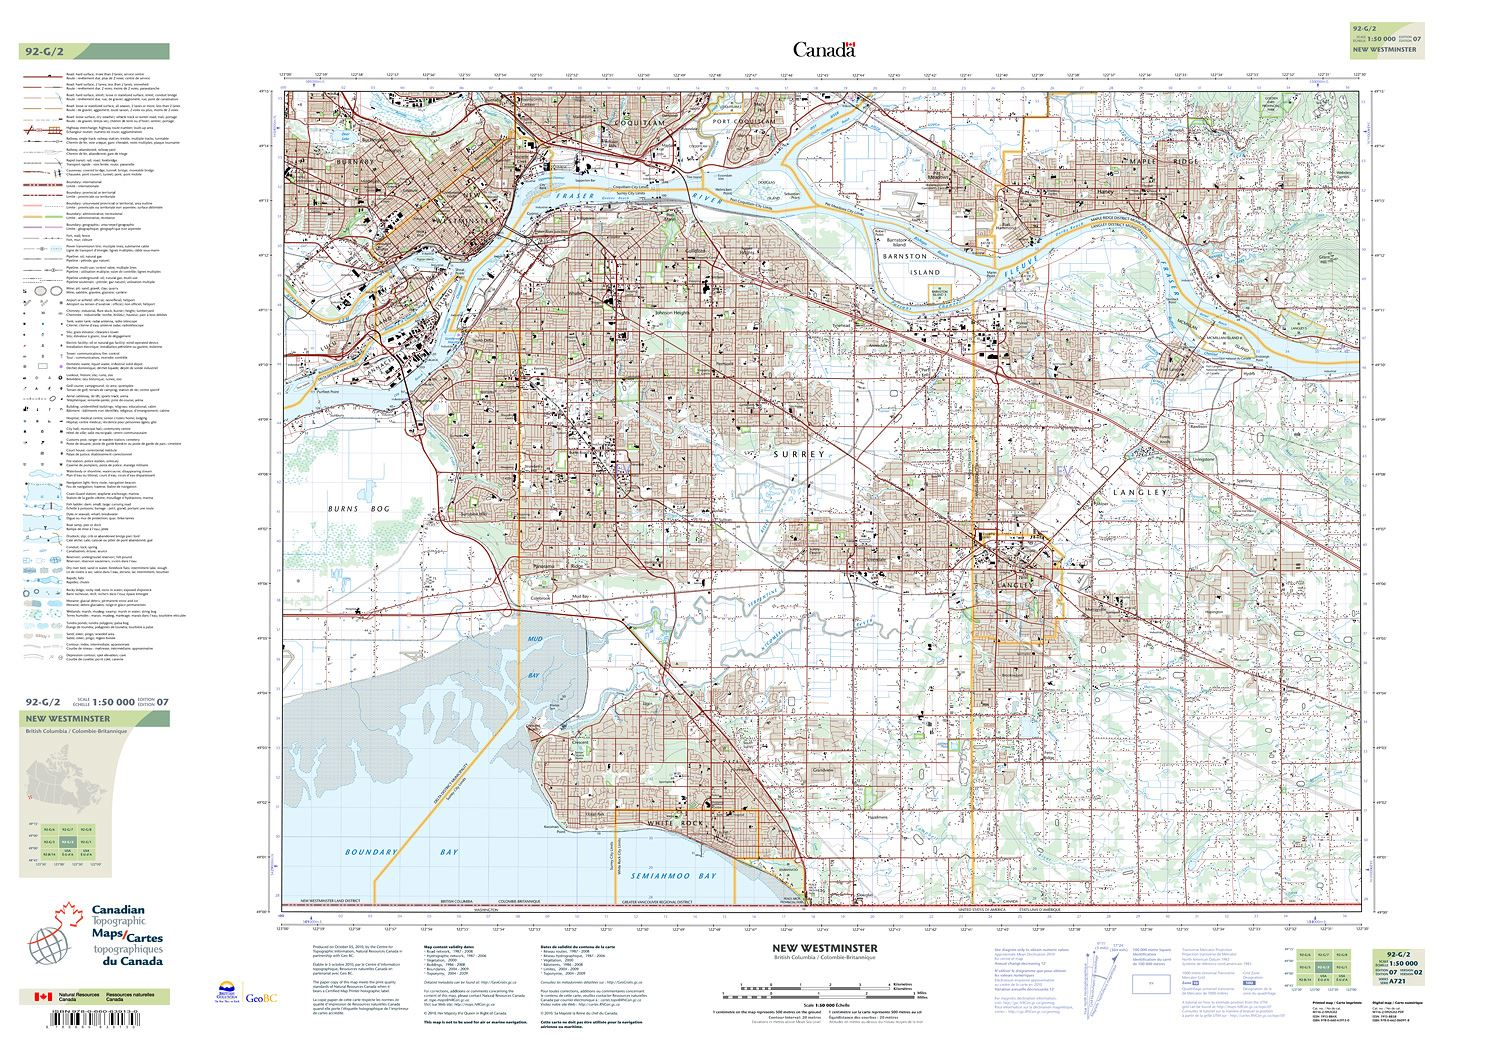 092g02 New Westminster Topographic Map